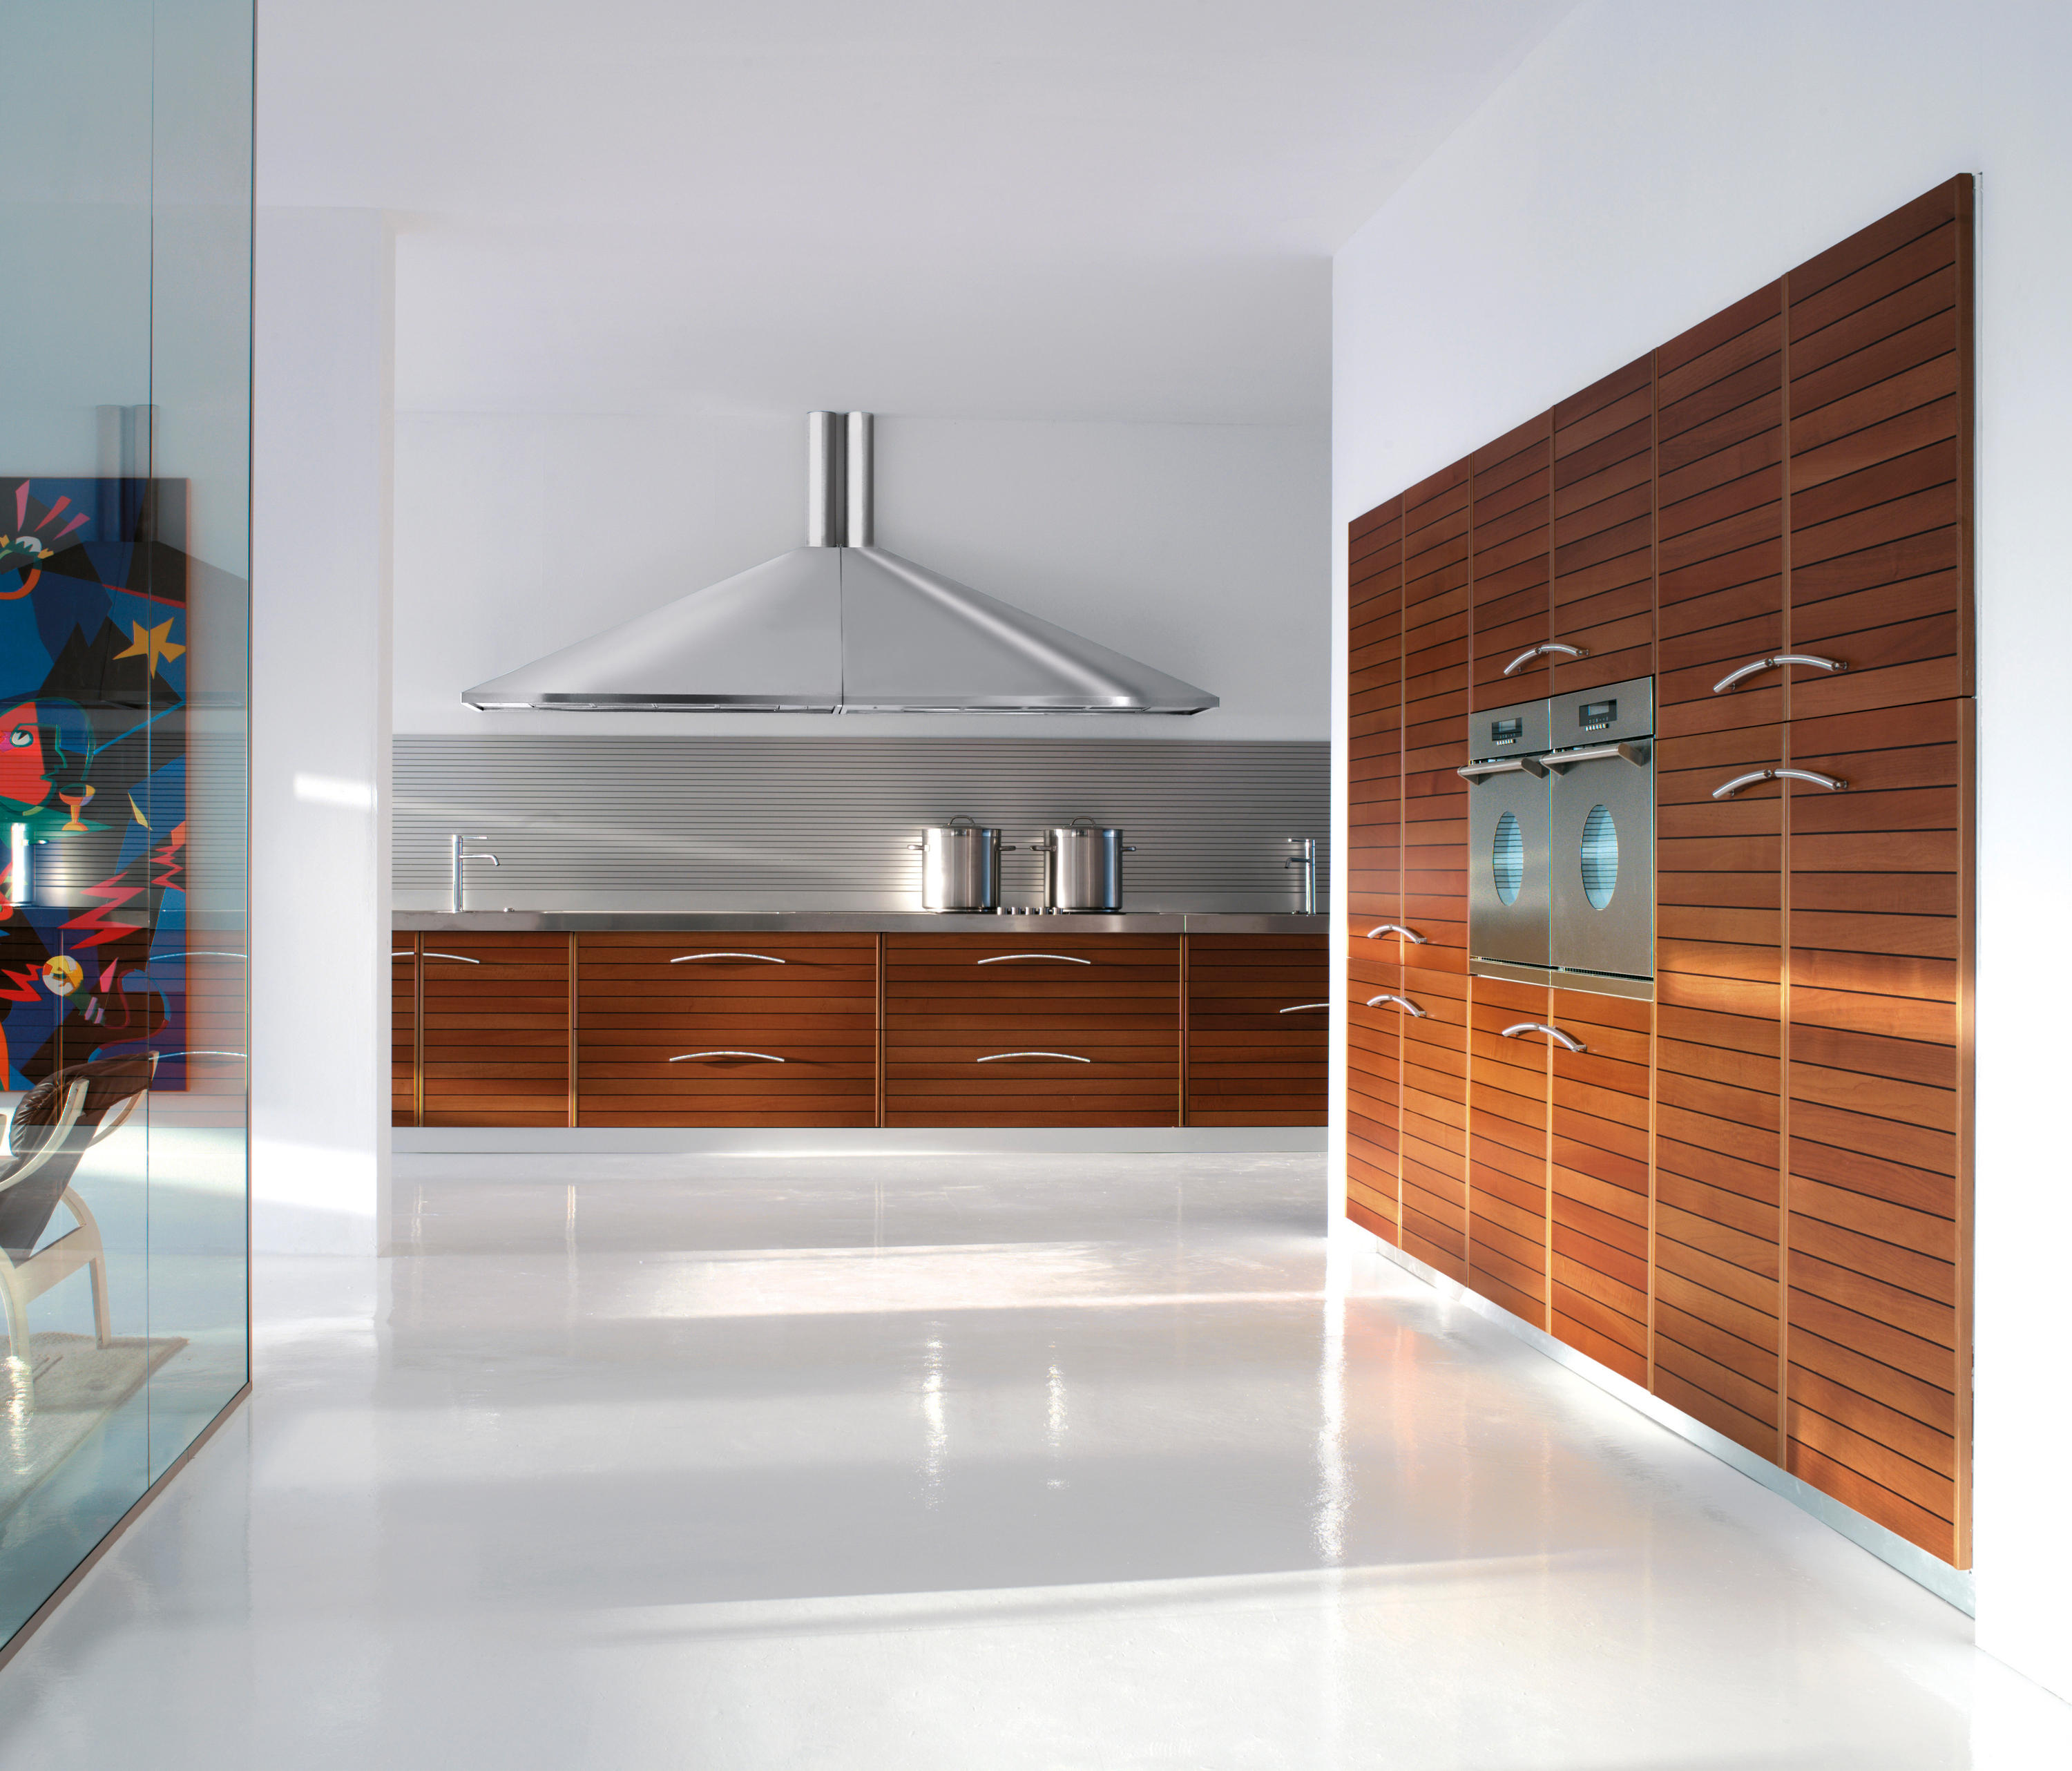 Schiffini Kuche Solaro Fitted Kitchens From Schiffini Architonic